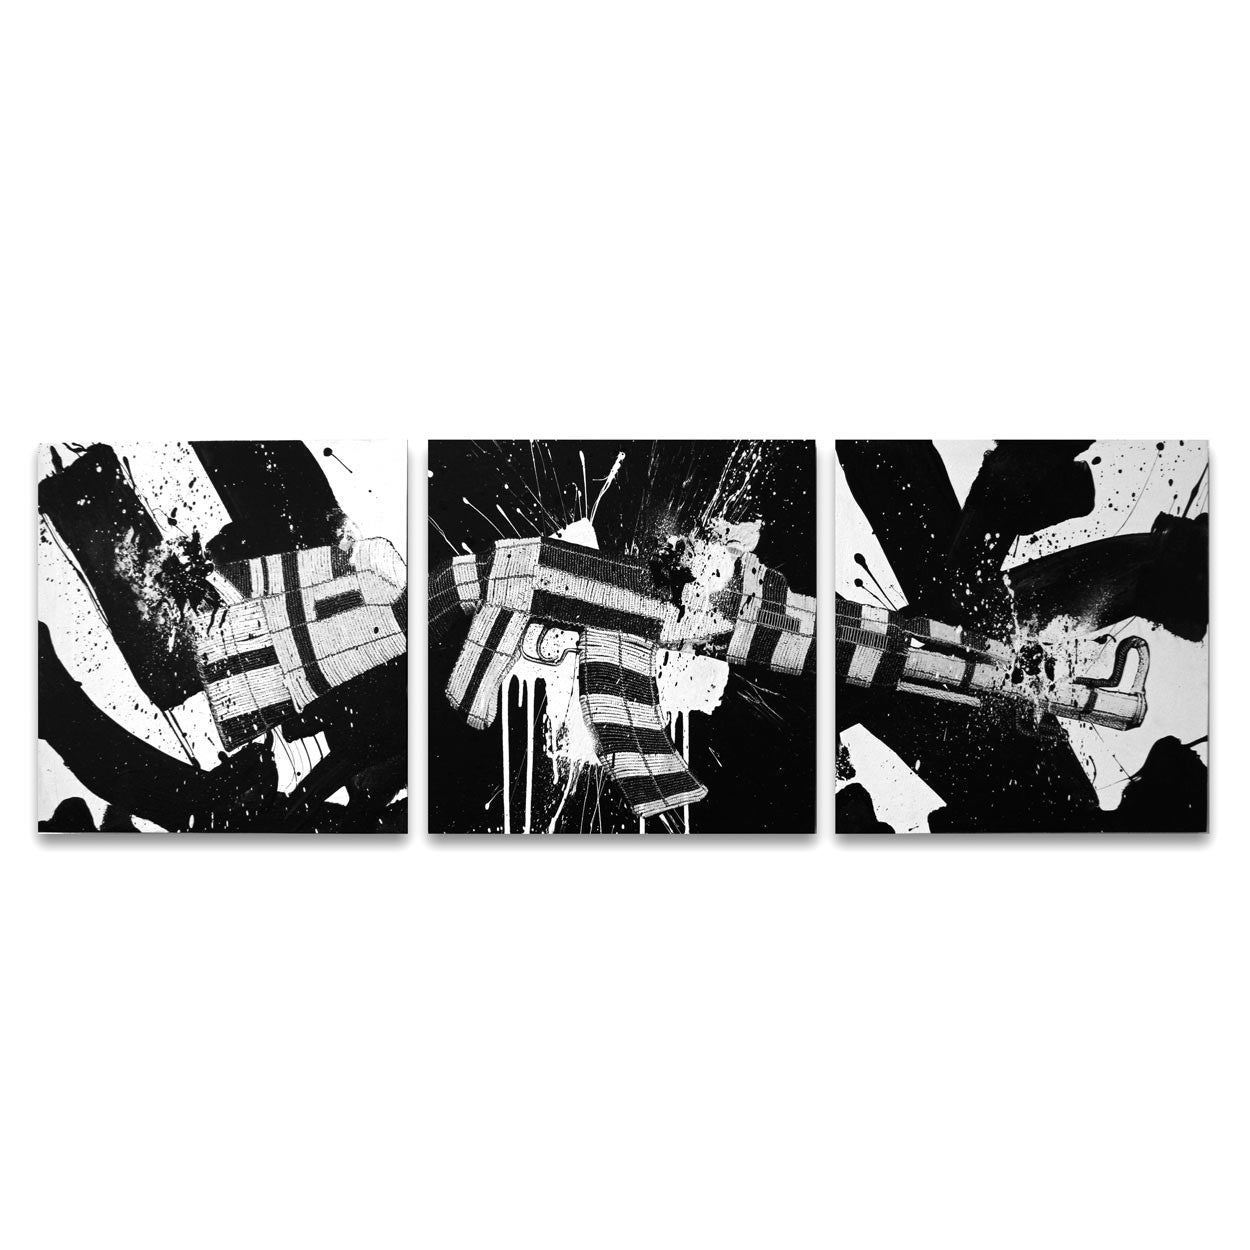 Bisco Smith X Ralph Ziman: Klashnikov - 54x18 (Triptych) - Bisco Smith